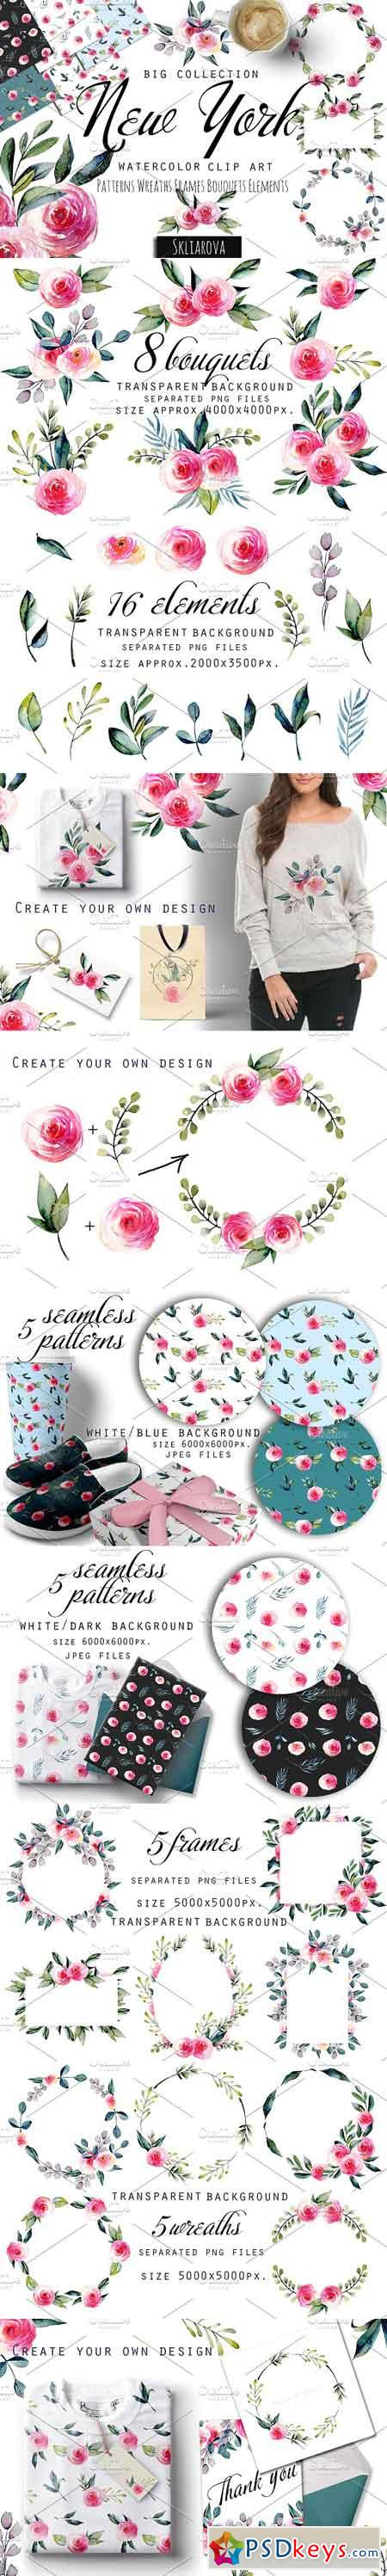 New York Roses watercolor clipart 2695419